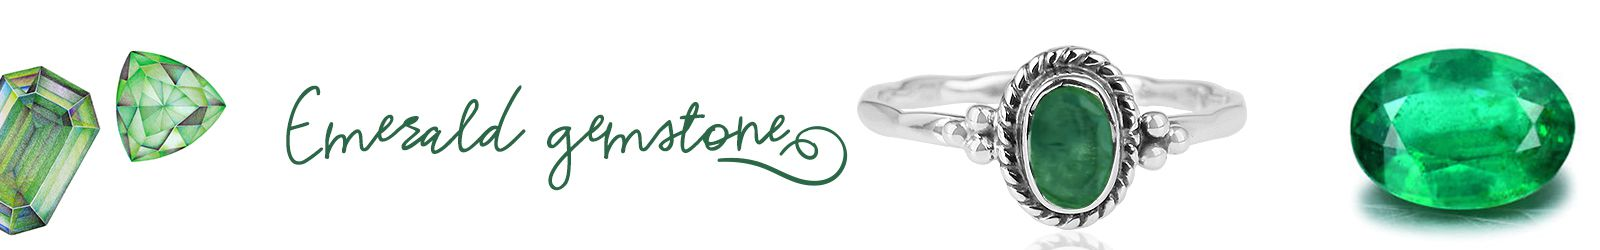 Wholesale Natural Emerald Gemstone Jewelry Manufacturer in Jaipur